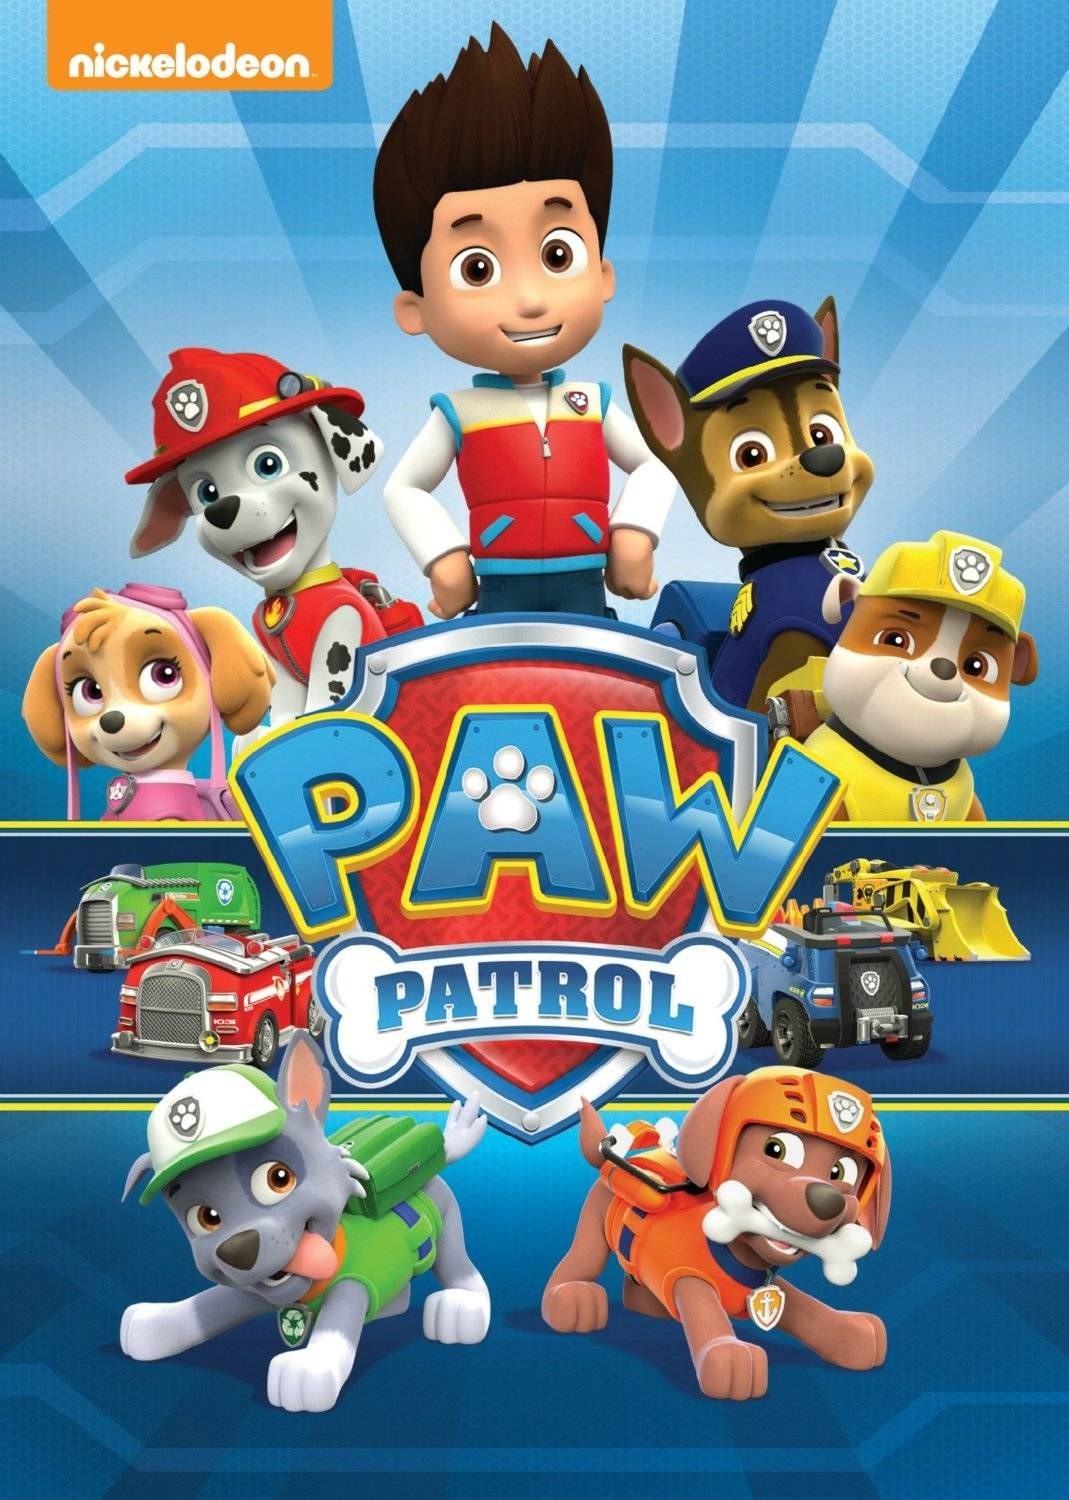 paw patrol birthday wallpaper ; 3b8651cdeaedfc55a6b5477812ca6208